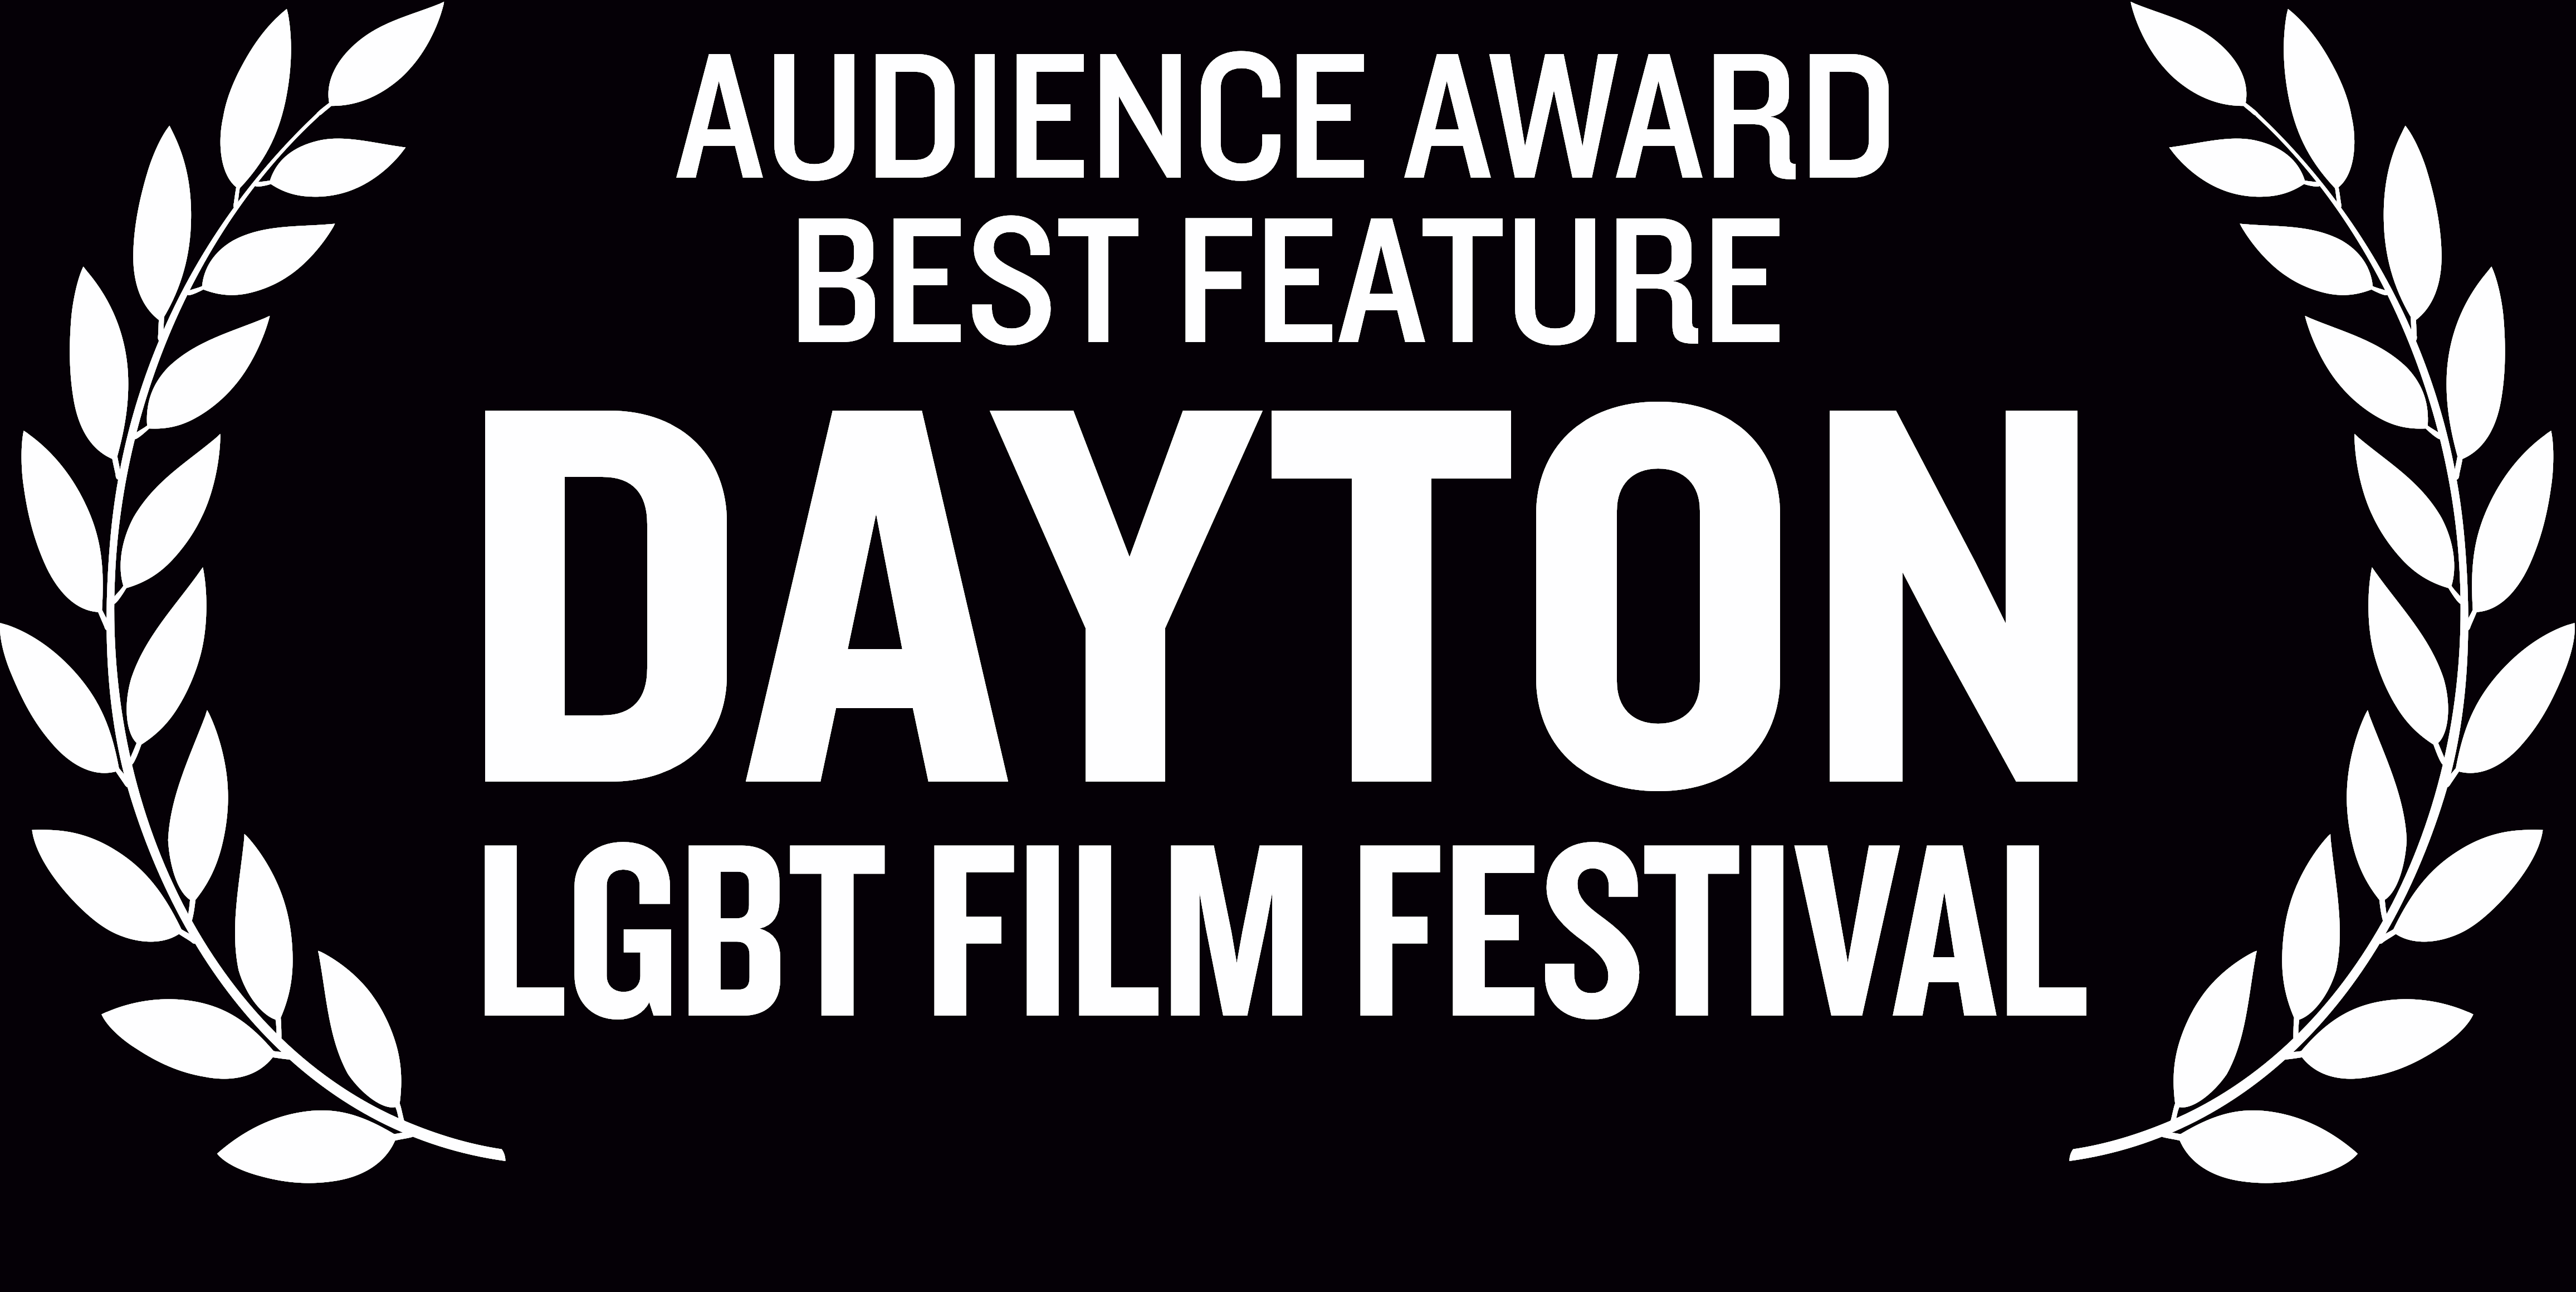 Dayton LGBT Film Festival Audience Award Best Feature 2019 Laurels